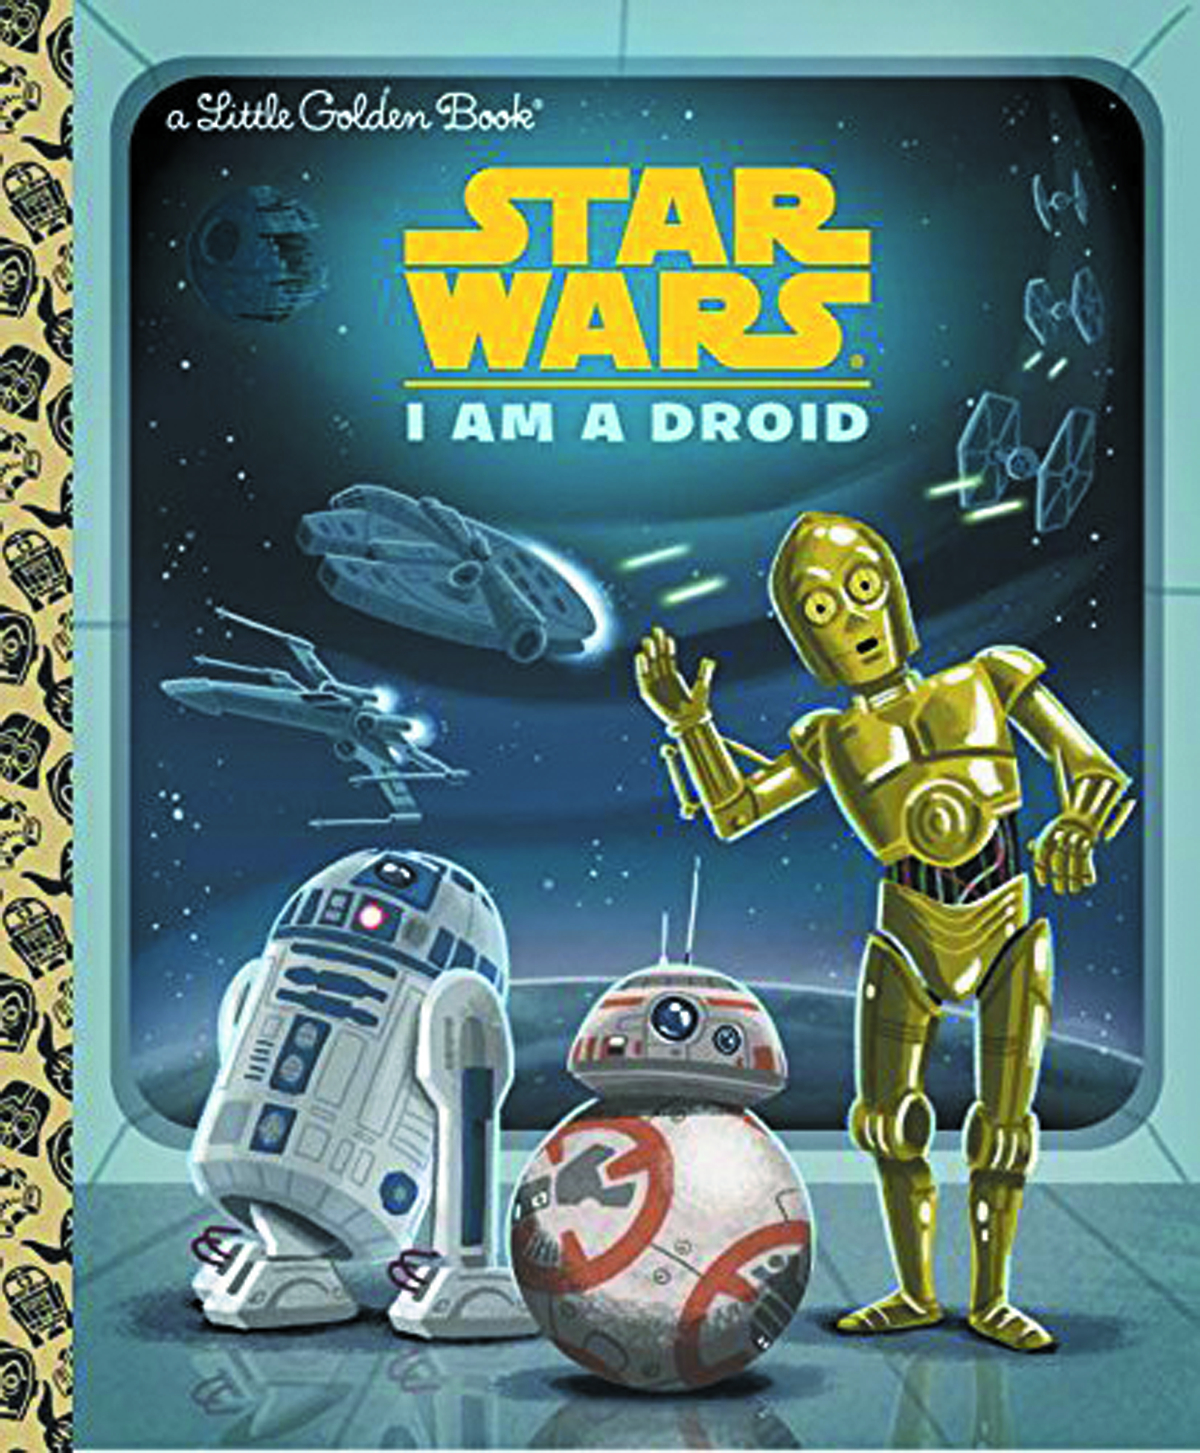 STAR WARS LITTLE GOLDEN BOOK I AM DROID